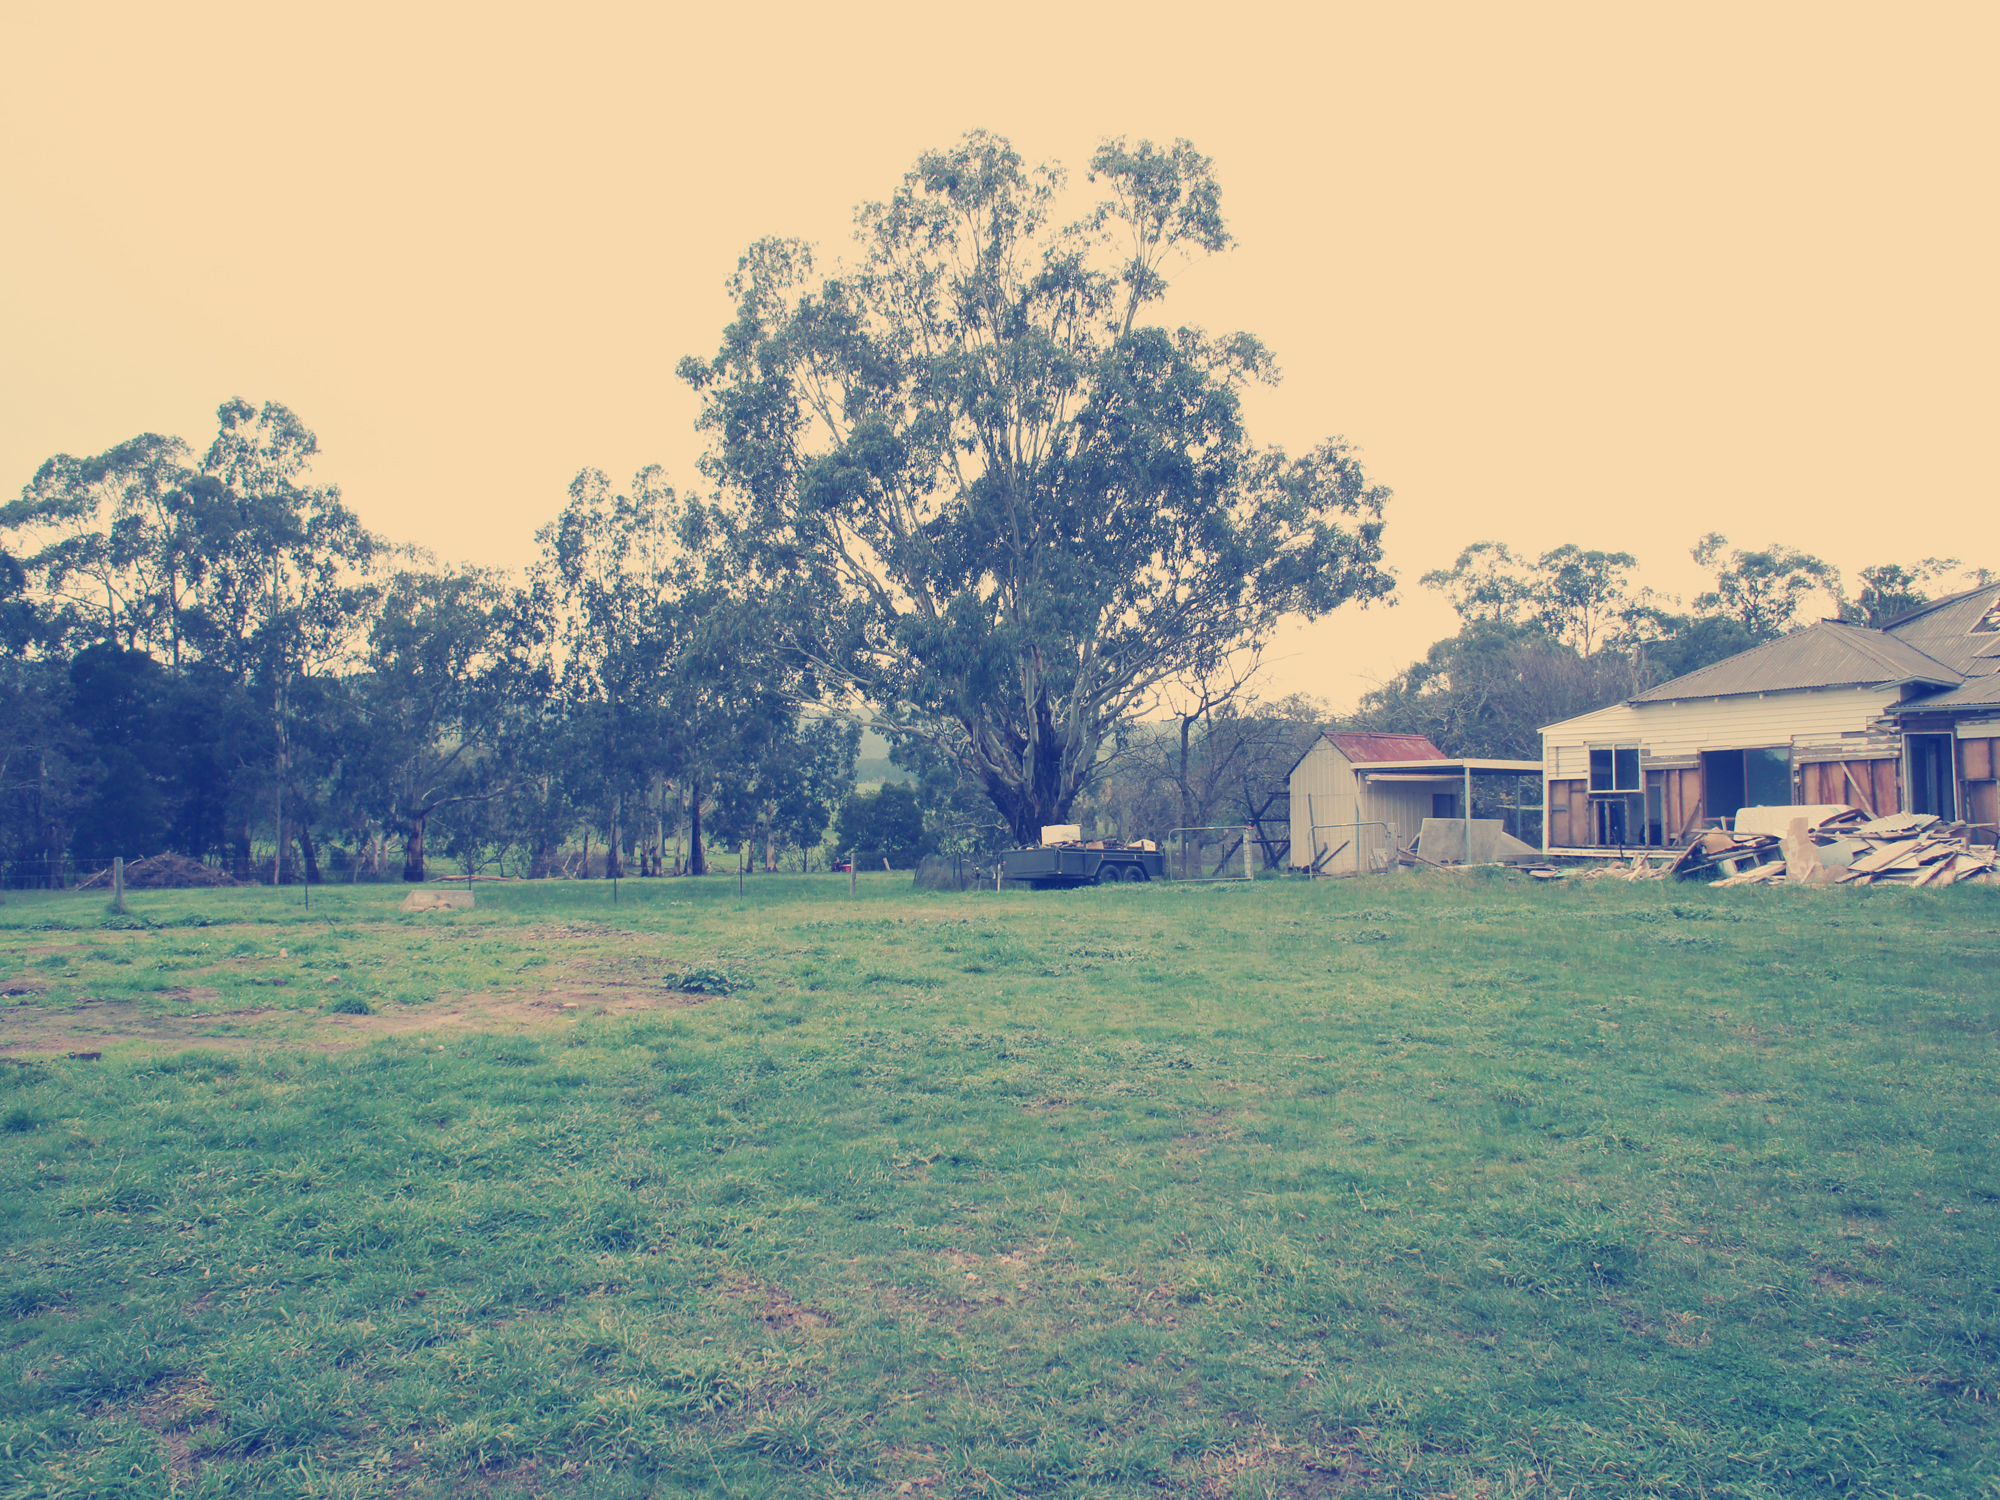 Murrindindi; Nashville; Photography; Landscape; Rural; Country; Countryside; Manna gum; Eucalyptus